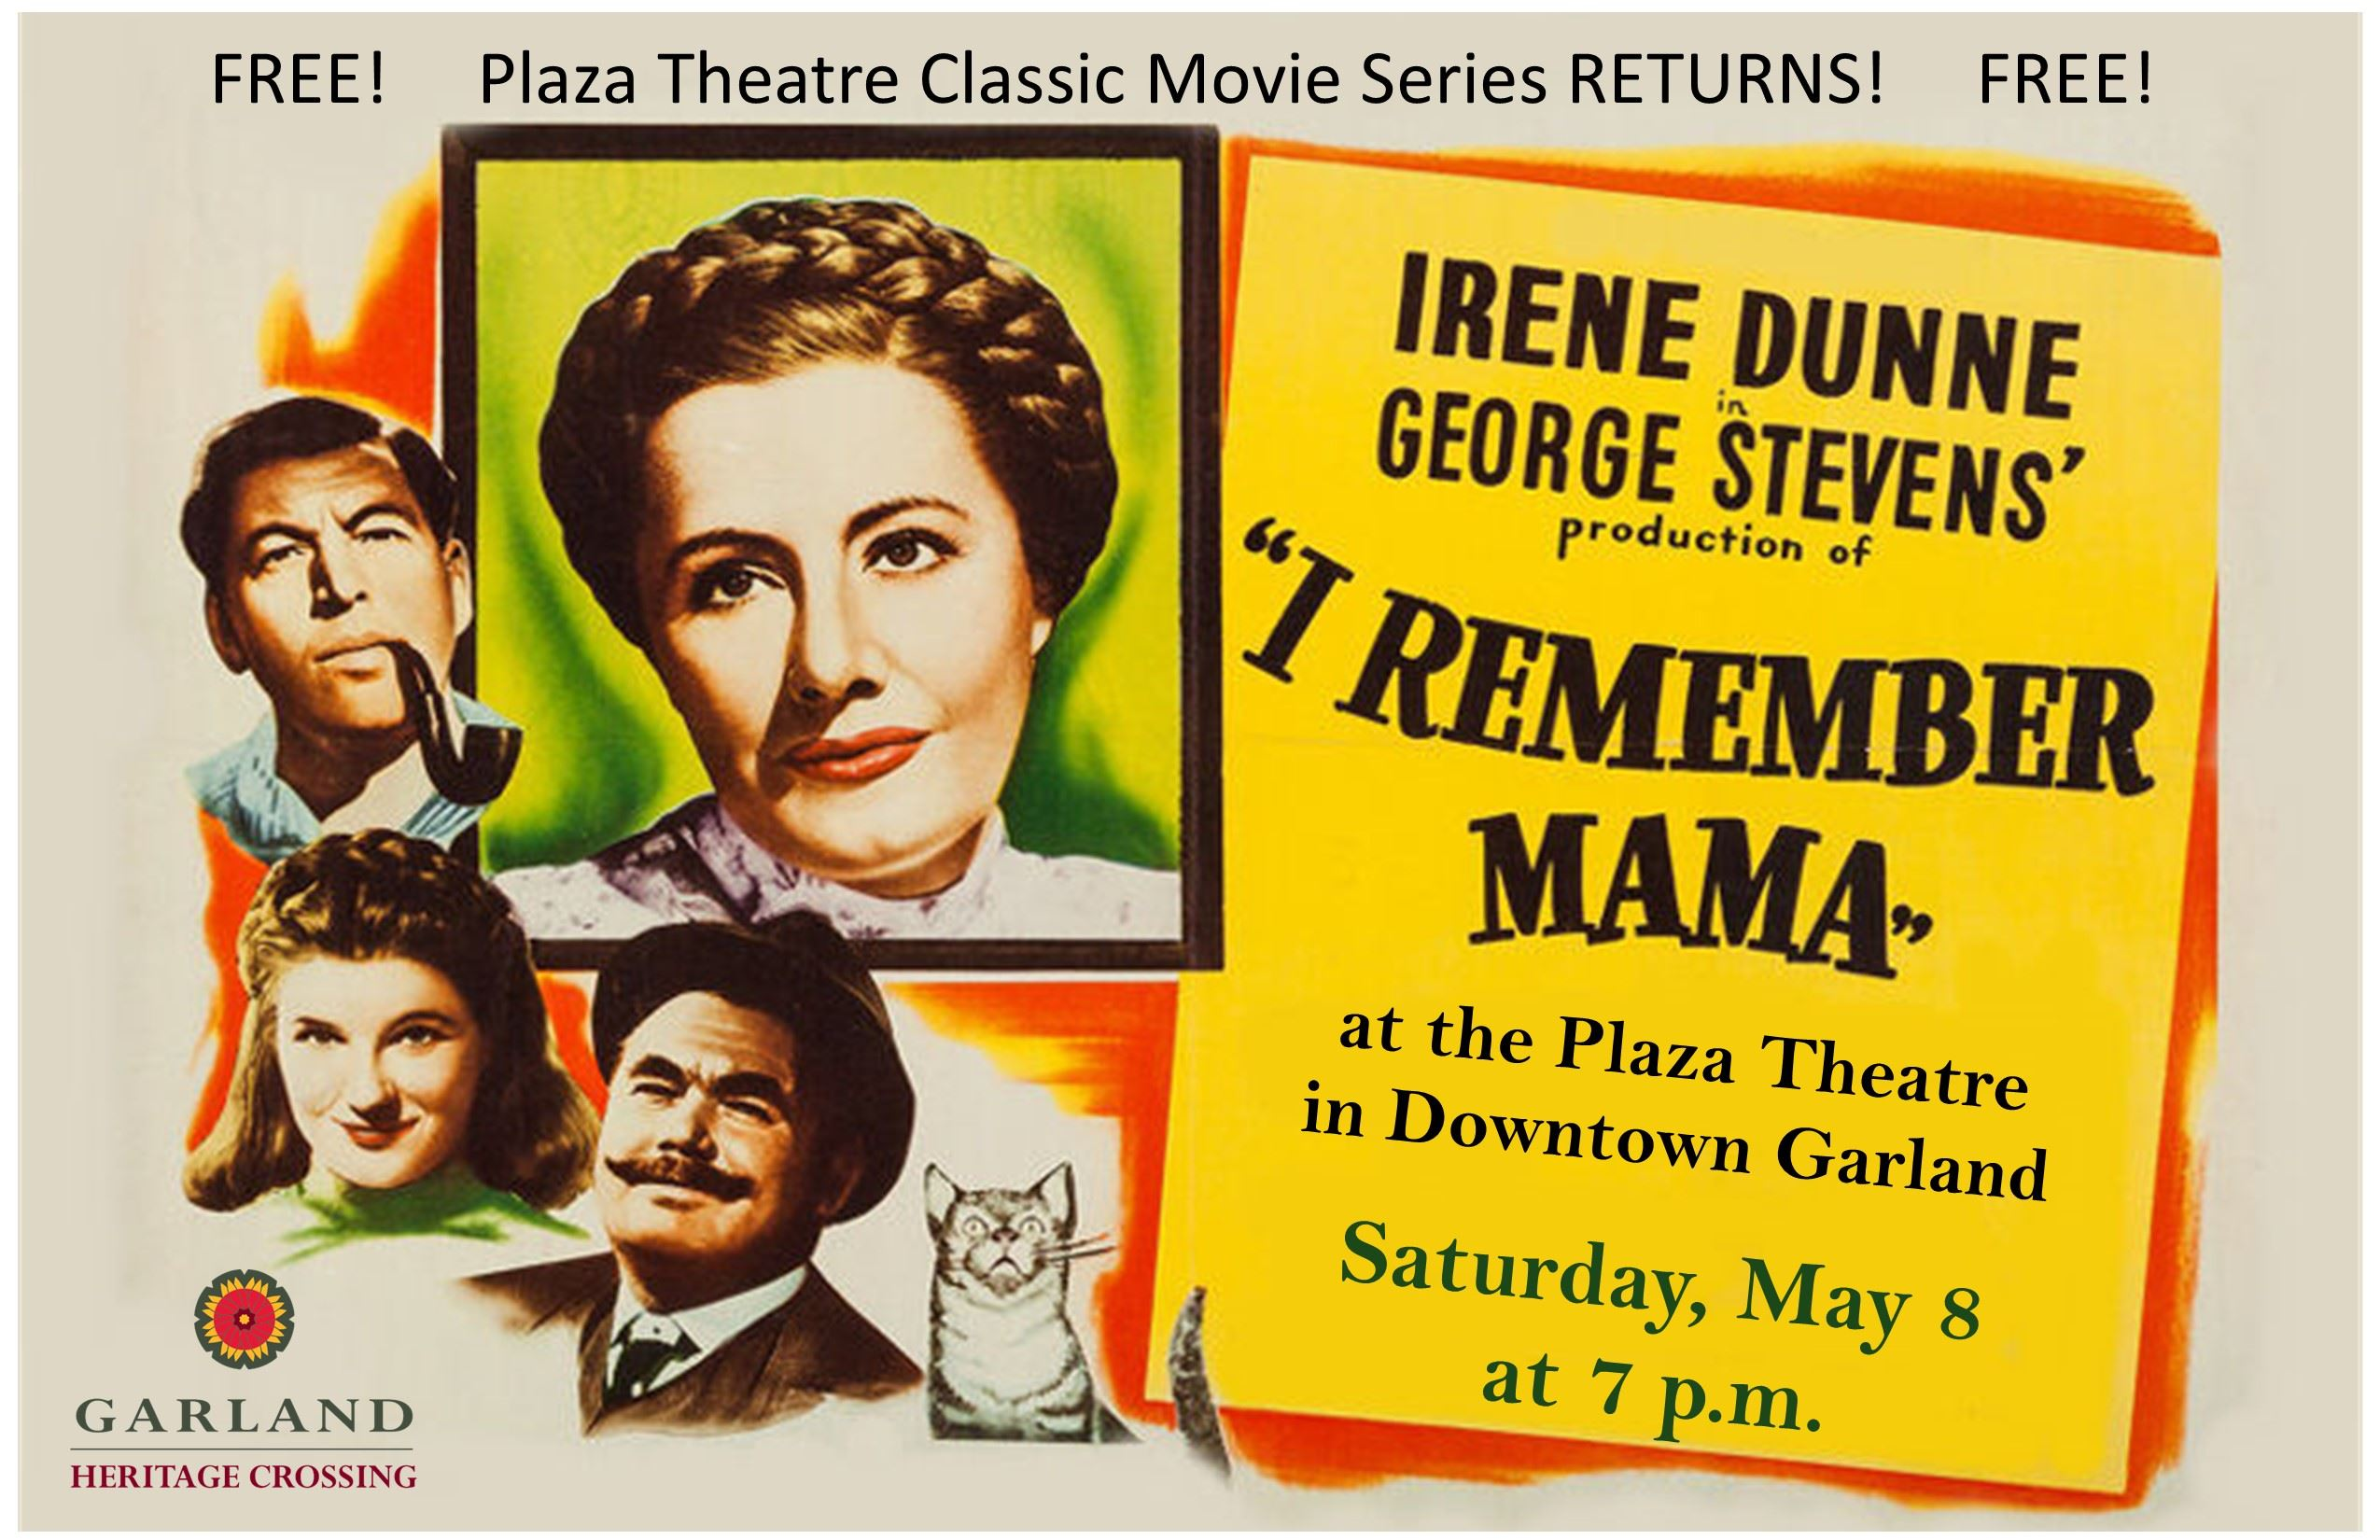 I Remember Mama, May 8 at 7 p.m. at the Plaza Theatre, Downtown Garland